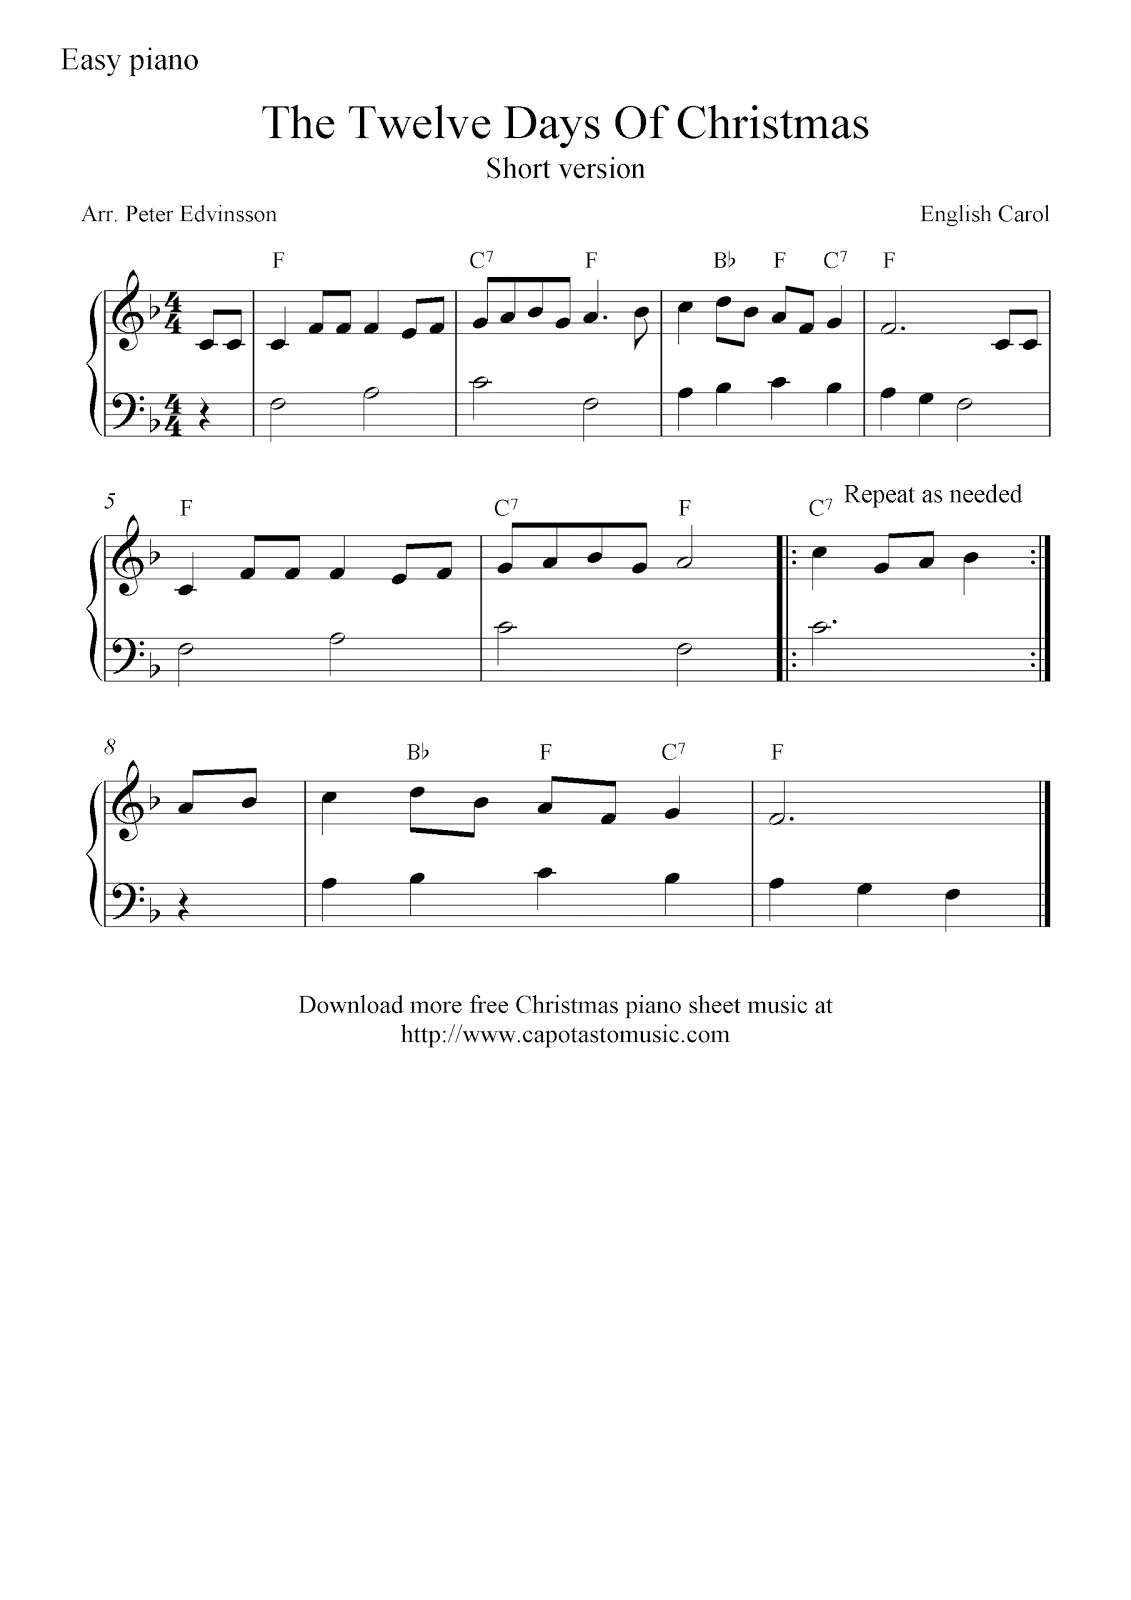 Free Christmas Piano Sheet Music Notes, The Twelve Days Of Christmas - Free Printable Christmas Sheet Music For Piano